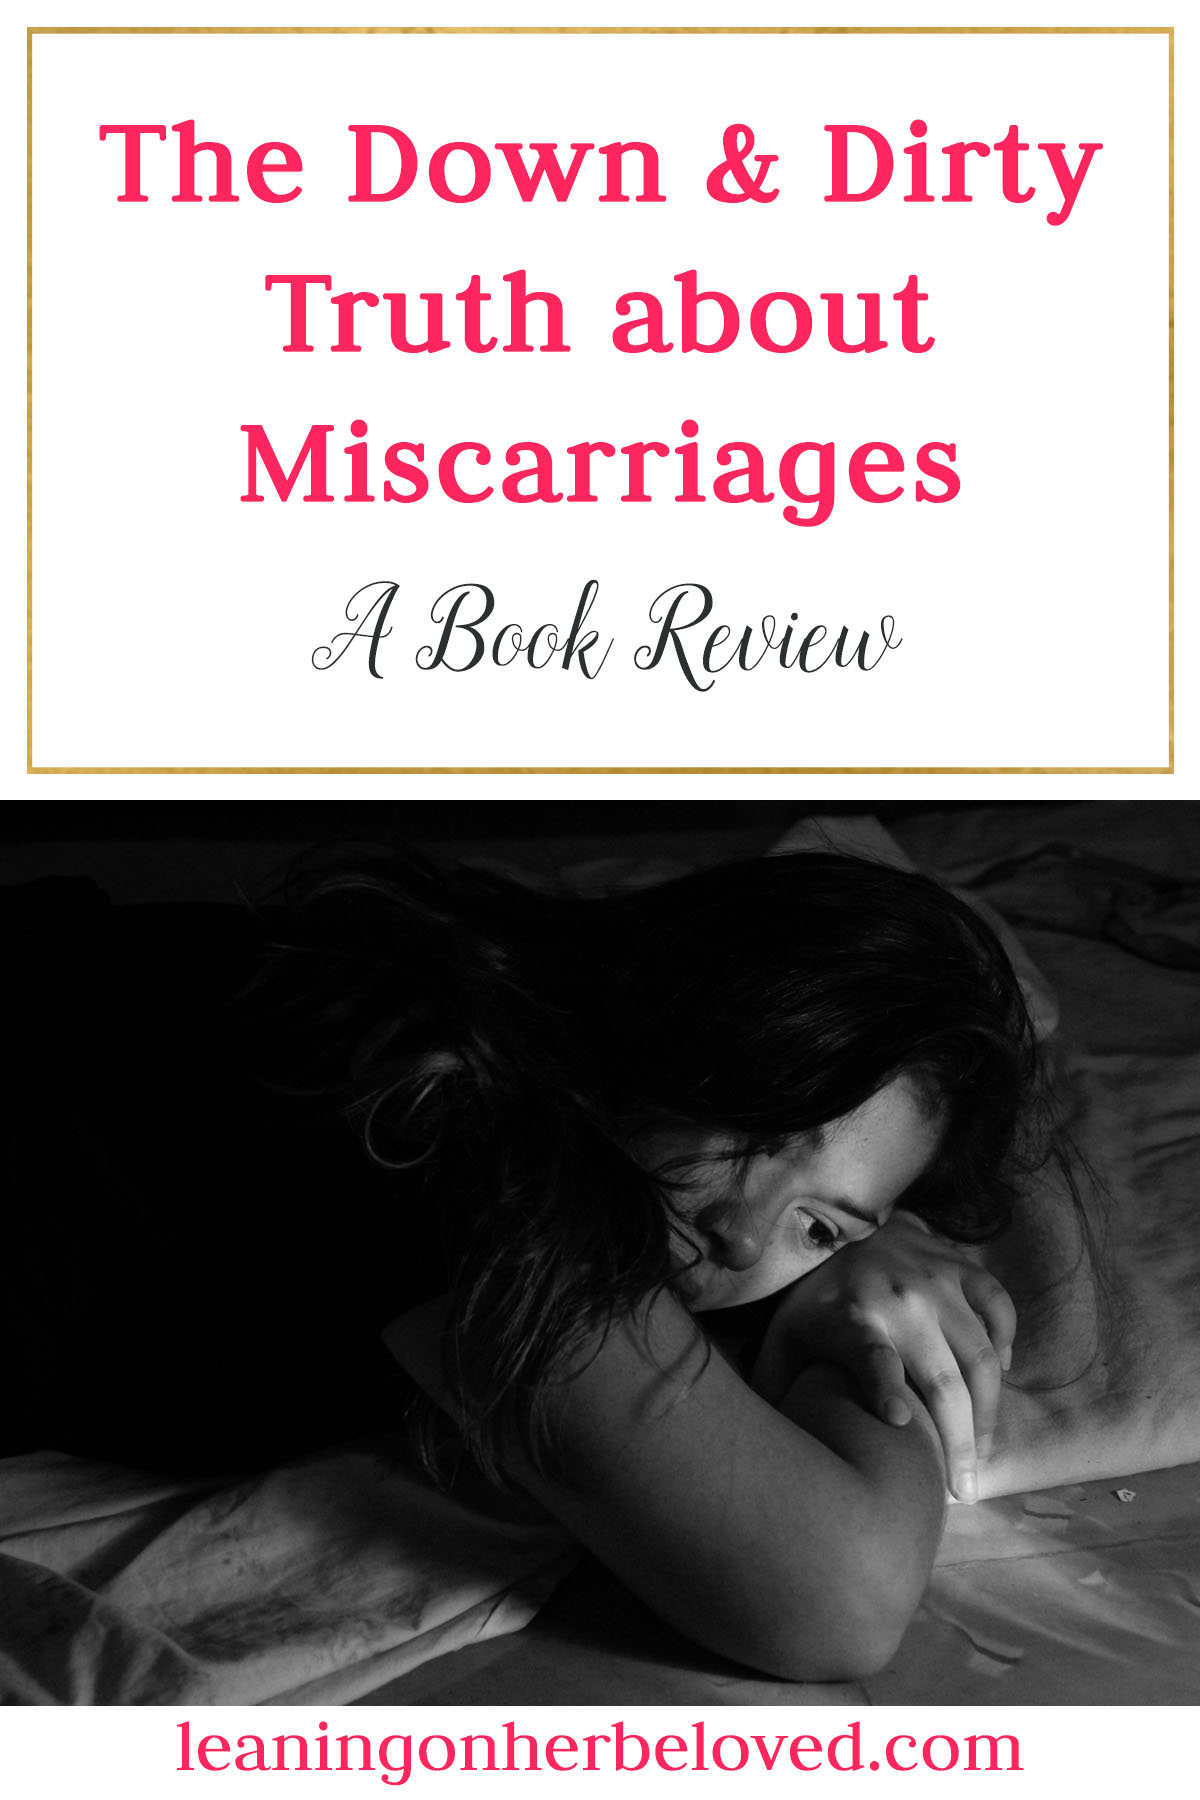 A wonderful short read that gives great insight and wisdom from a woman who has experienced 2 miscarriages